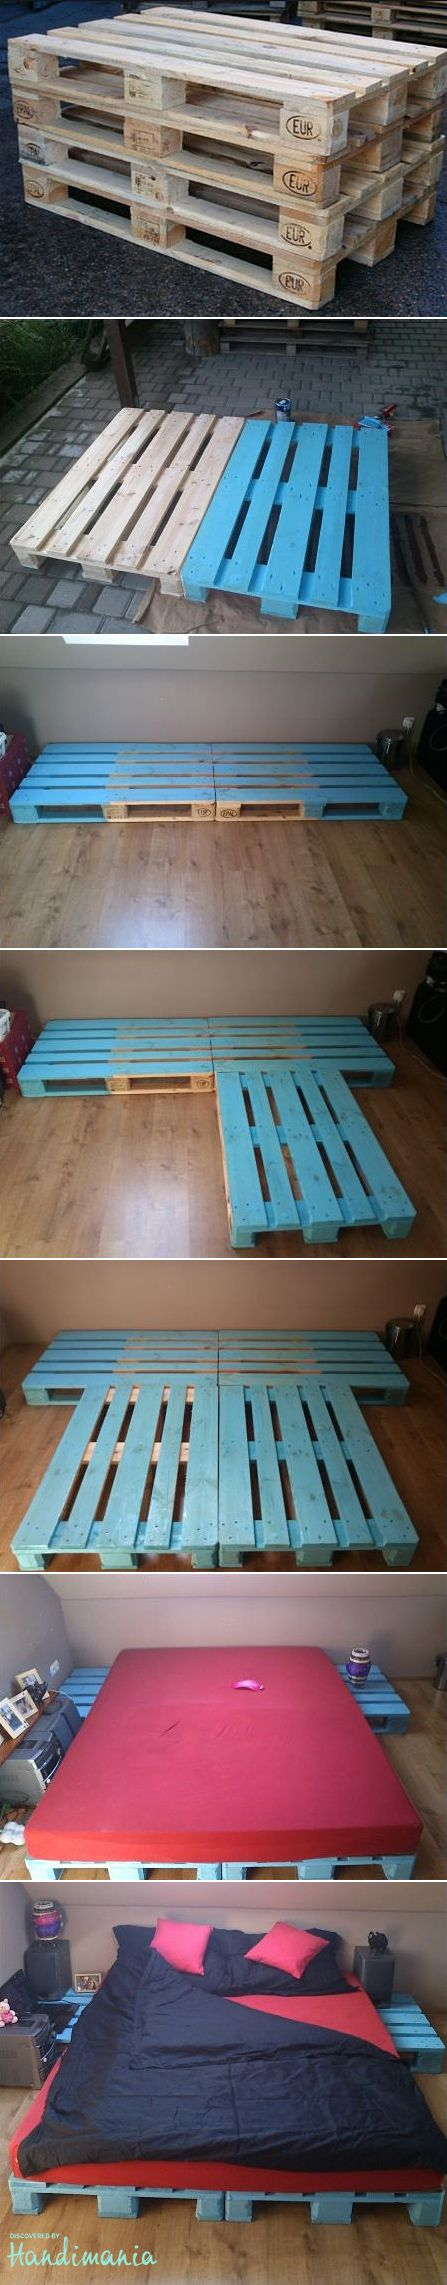 Single pallet bed frame - Pallet Bed Make This Higher Pallet Bed I Am Making One Of These I Have Some Pallets Need A Couple More